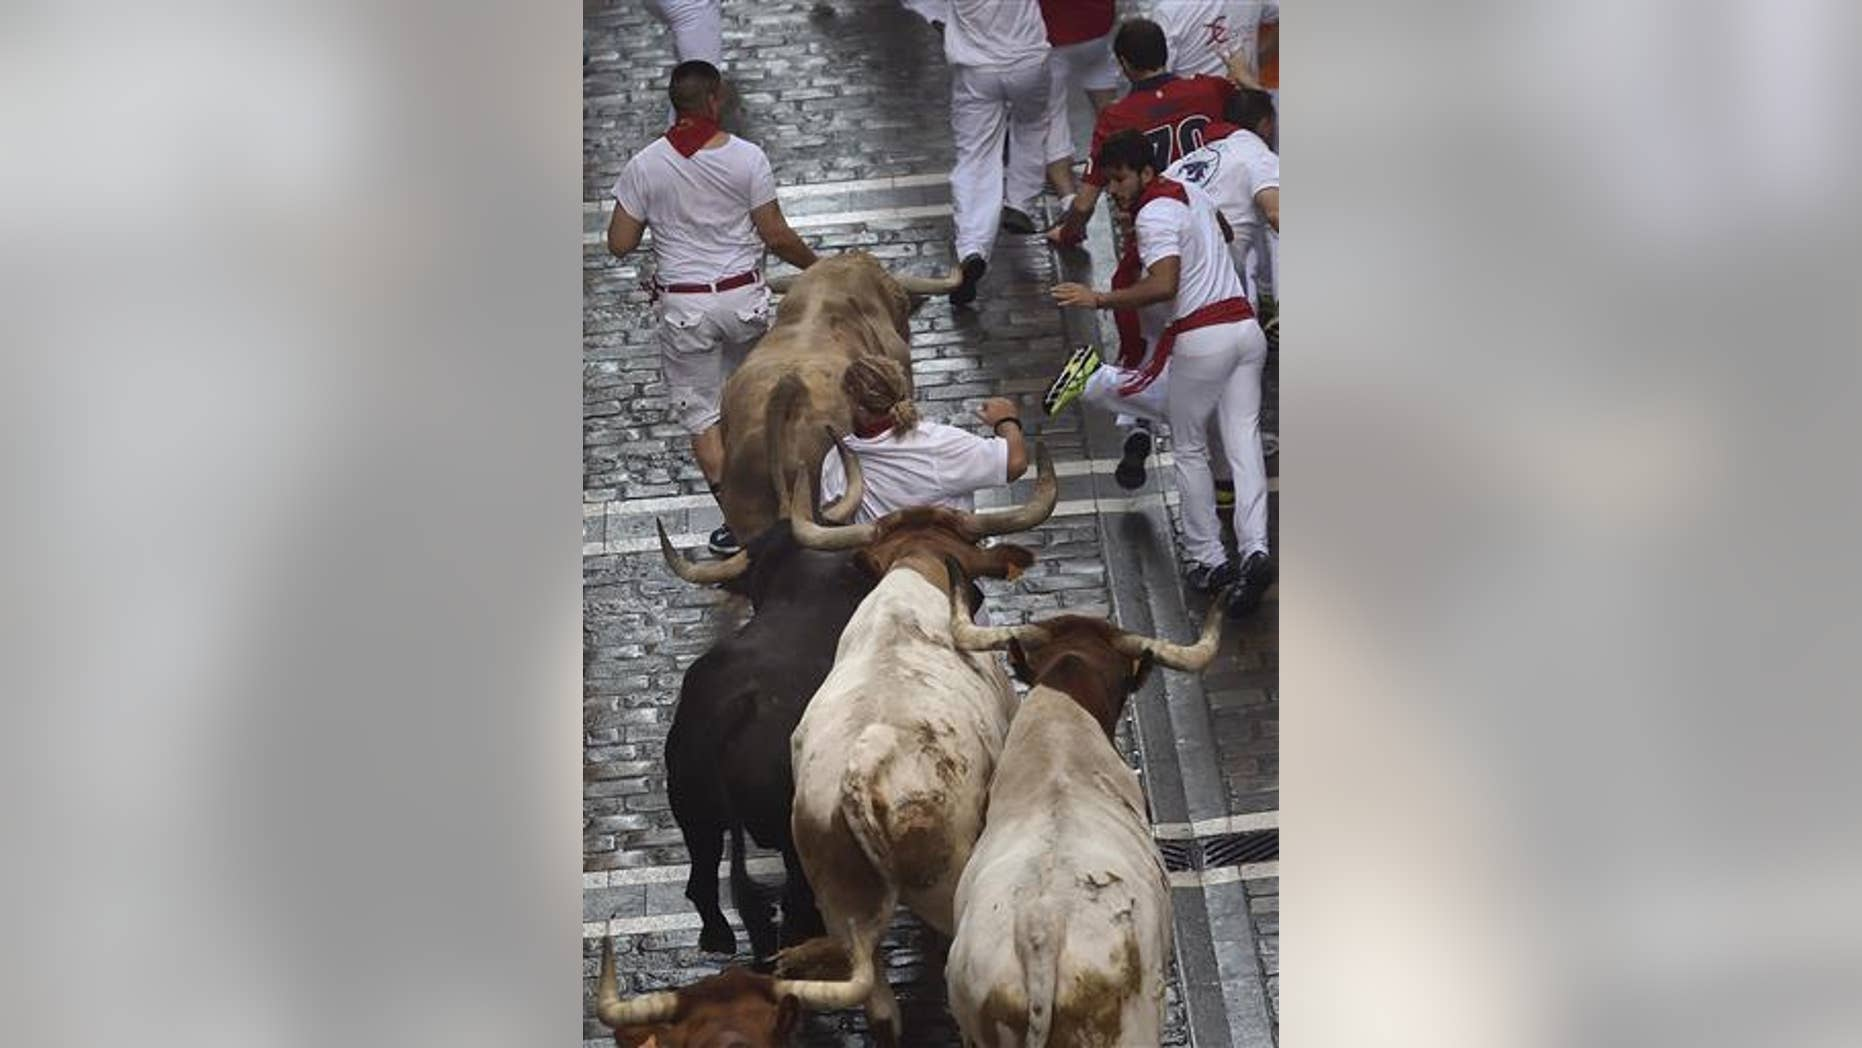 A runner runs in front Fuente Ymbro fighting bulls on the Estafeta street during the first running of the bulls at the San Fermin Festival, in Pamplona, Spain.